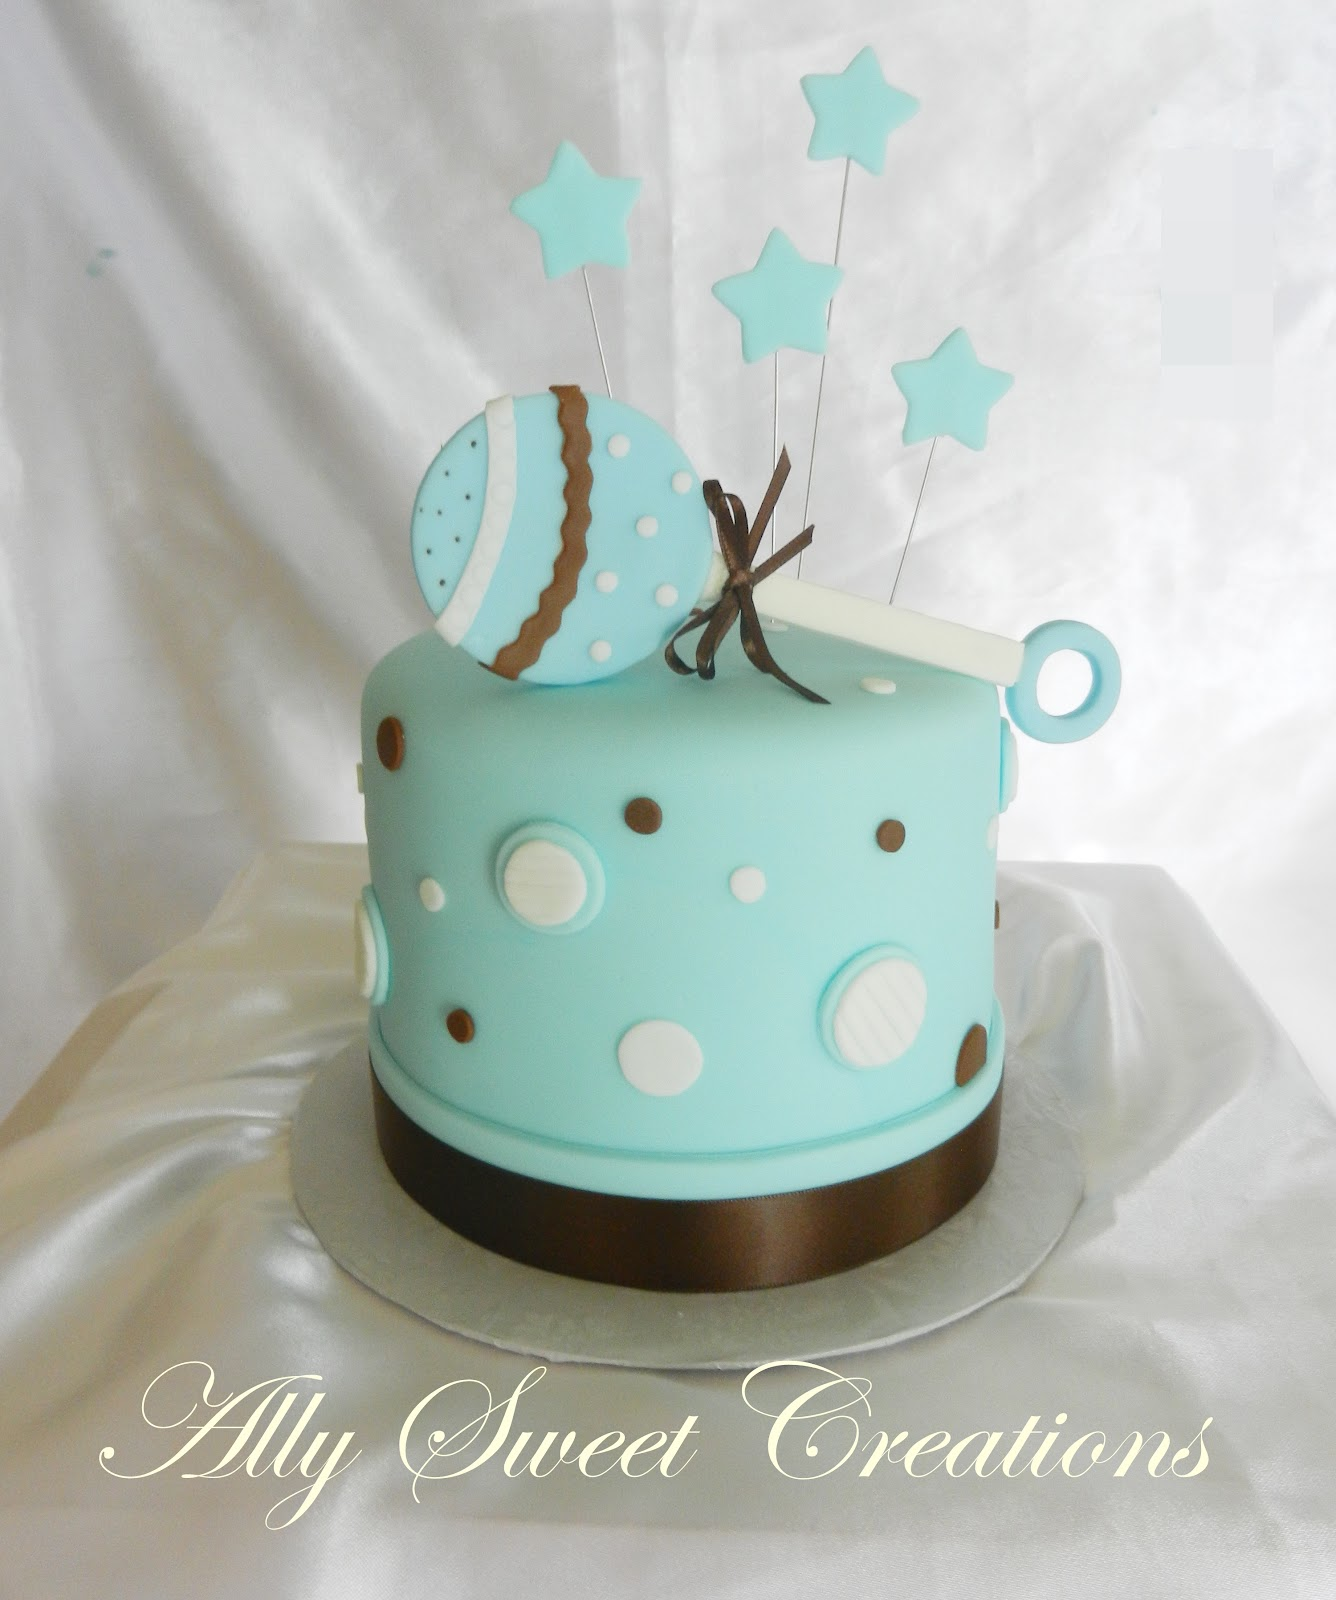 Ally Sweet Creations Baby Shower One Tier Cake